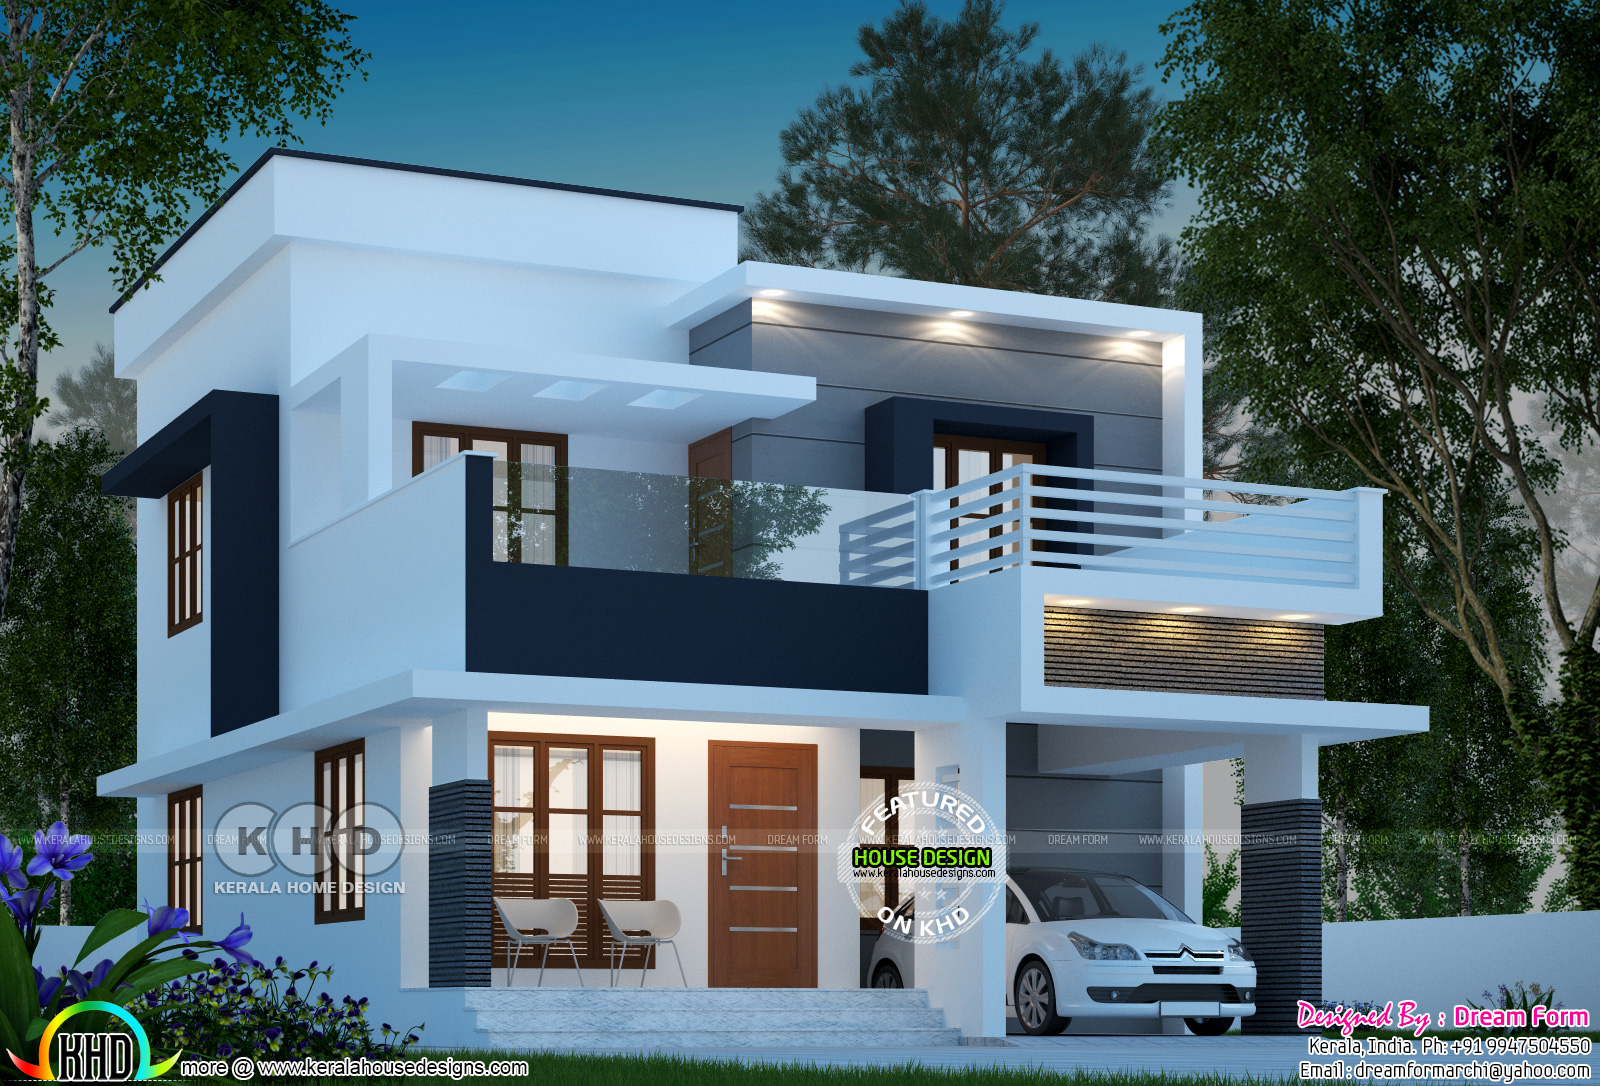 First floor area 640 sq ft total area 1585 sq ft no of bedrooms 3 ground floor plan width 8 3 m ground floor plan length 12 2 m